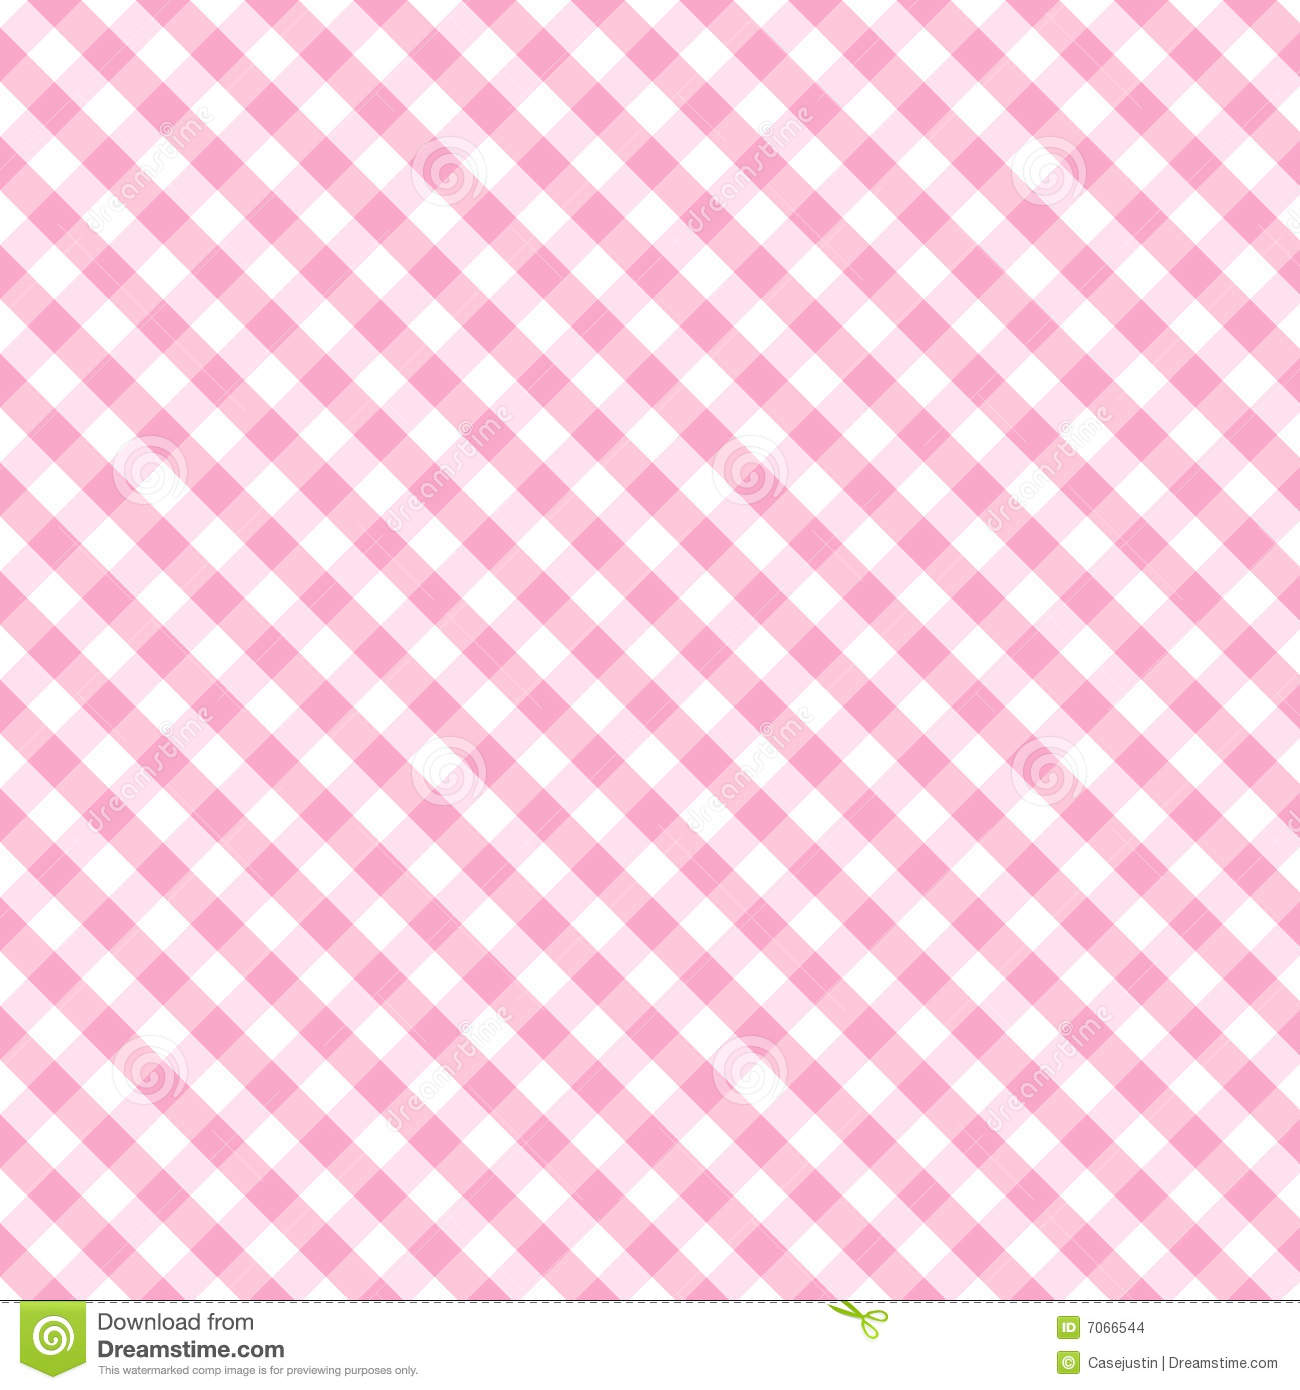 Baby cross gingham pink seamless weave